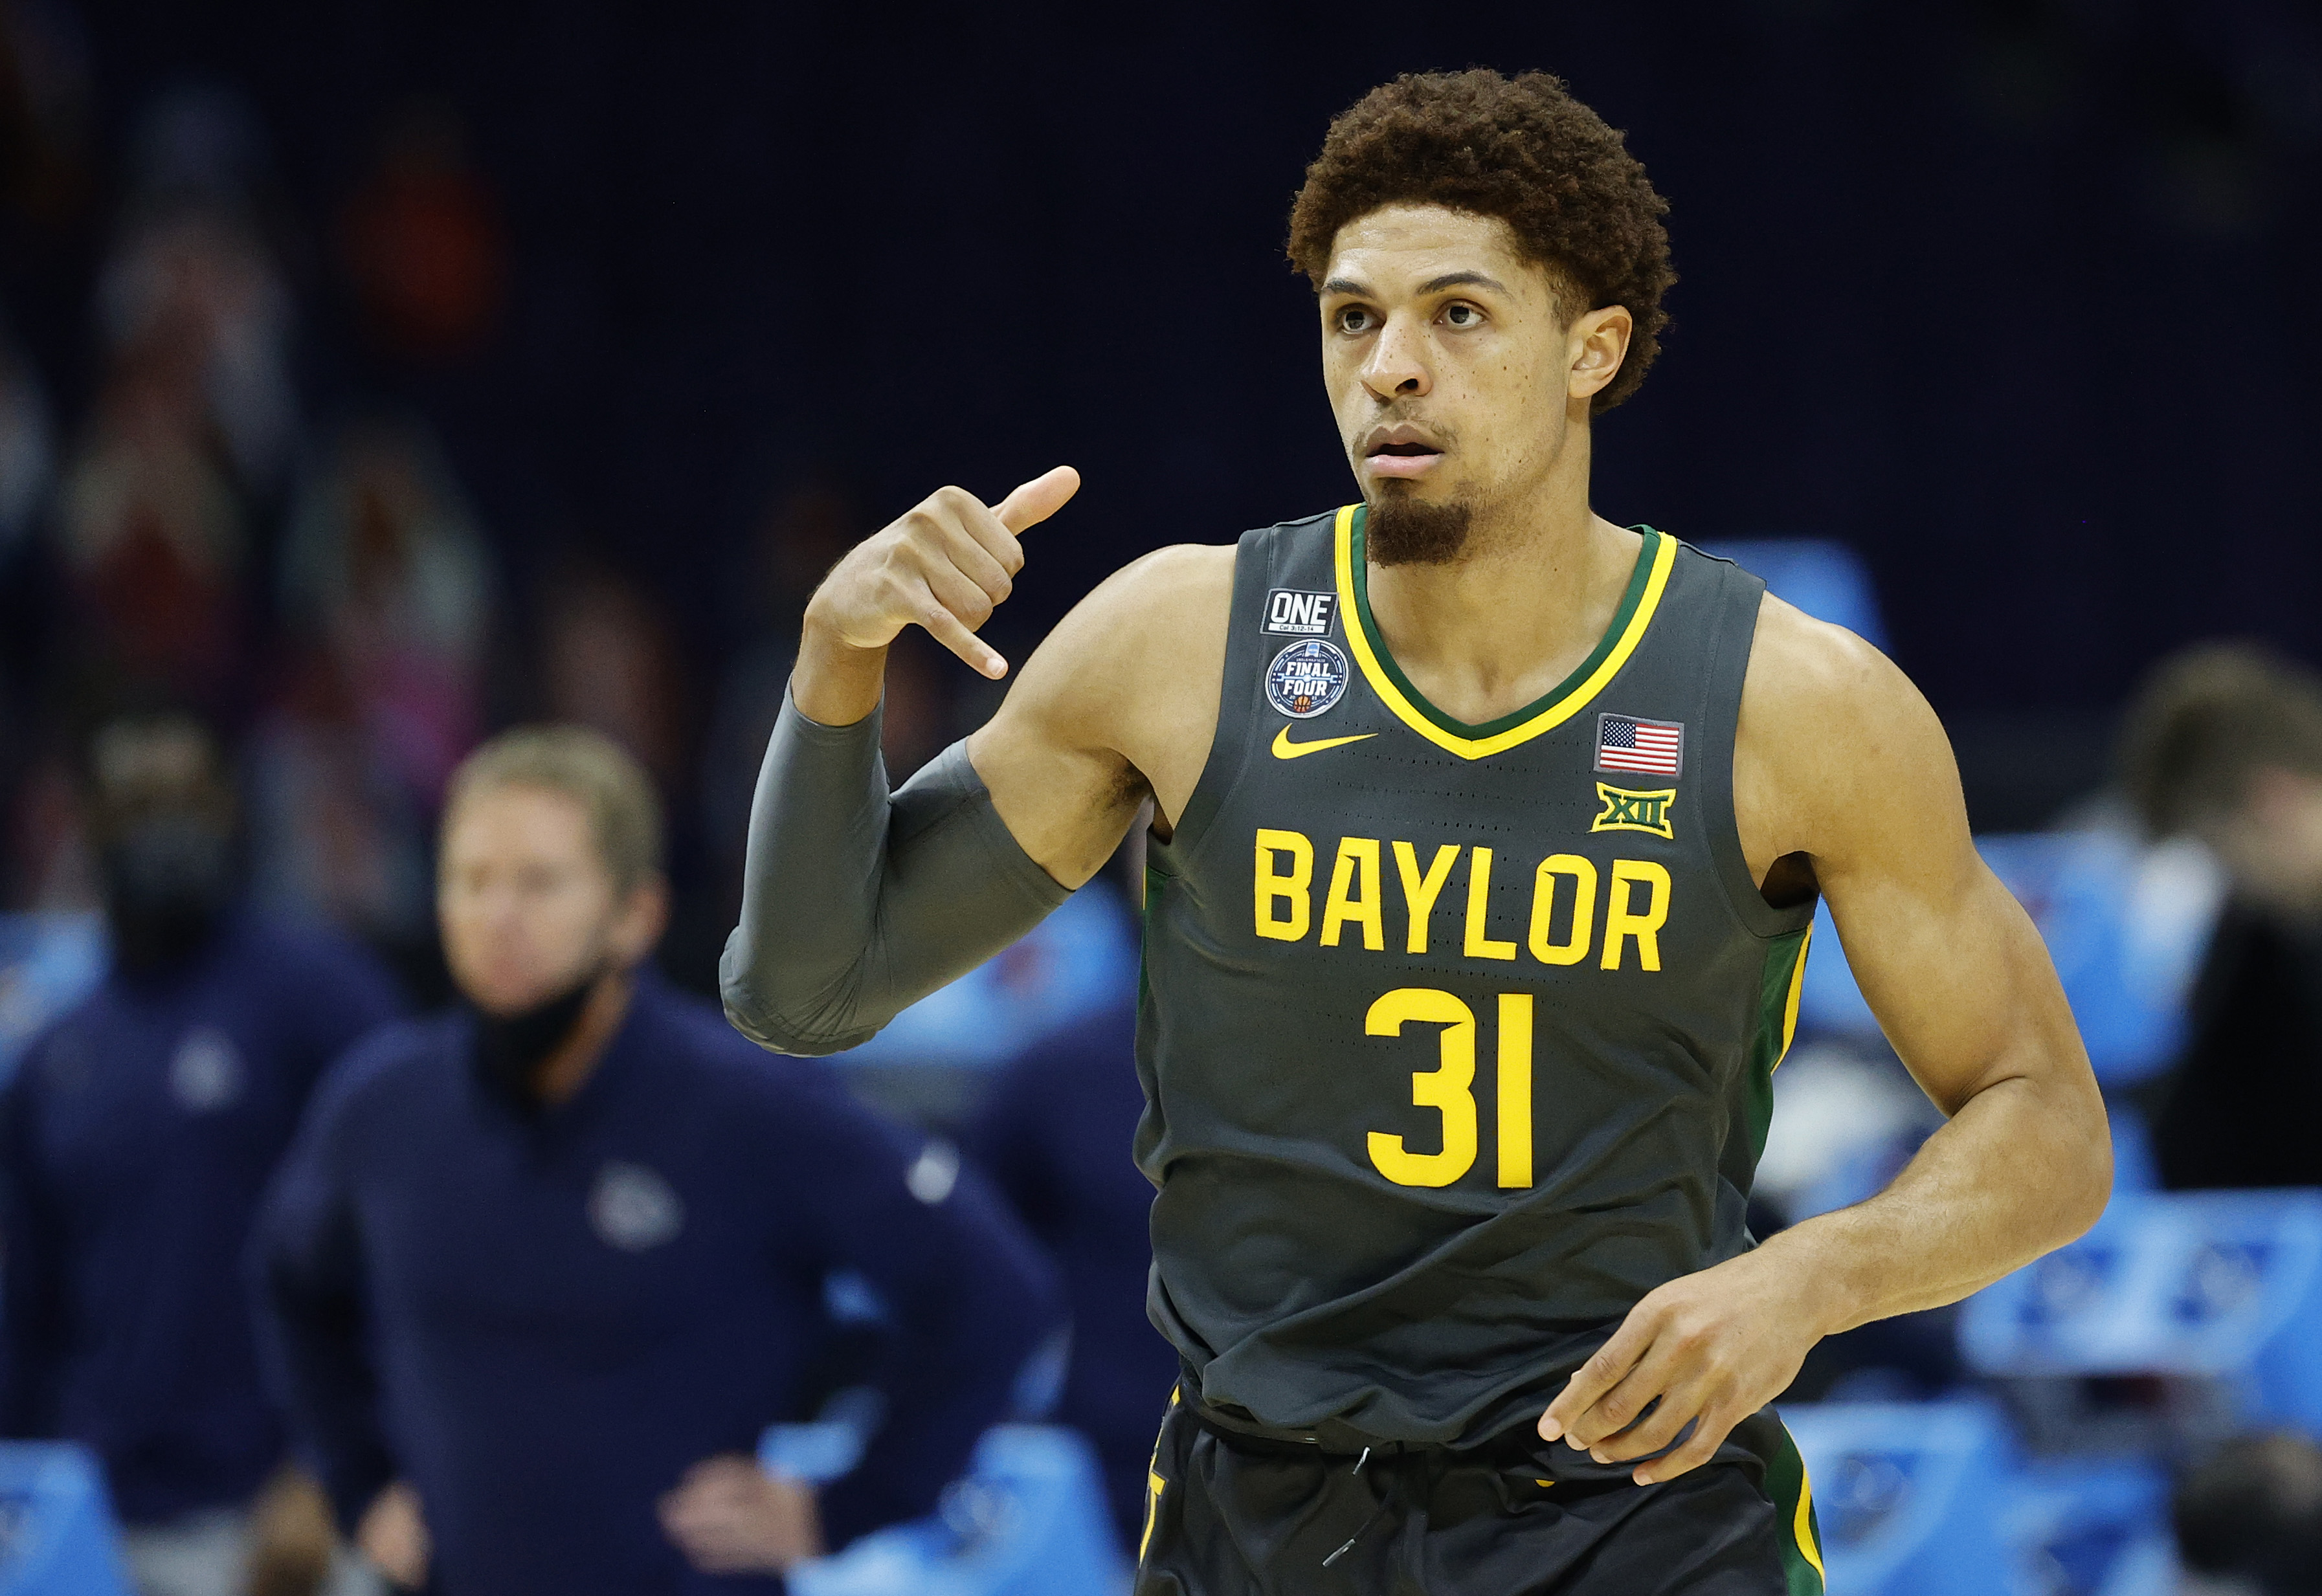 INDIANAPOLIS, INDIANA - APRIL 05: MaCio Teague #31 of the Baylor Bears reacts against the Gonzaga Bulldogs in the National Championship game of the 2021 NCAA Men's Basketball Tournament at Lucas Oil Stadium on April 05, 2021 in Indianapolis, Indiana.